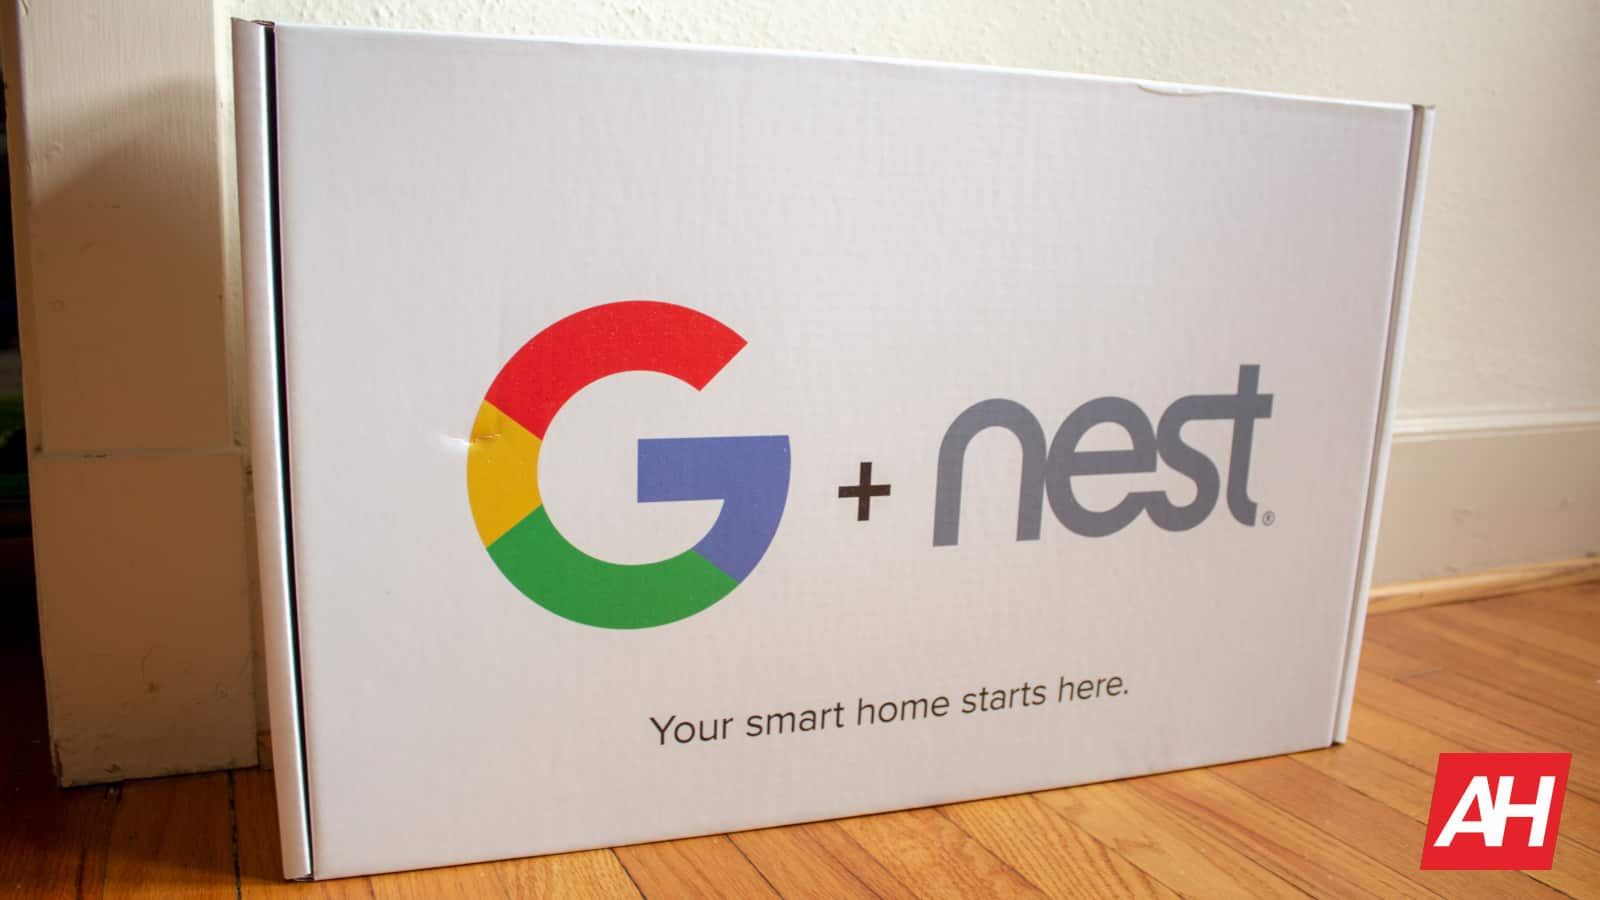 Google Nest AH NS 01